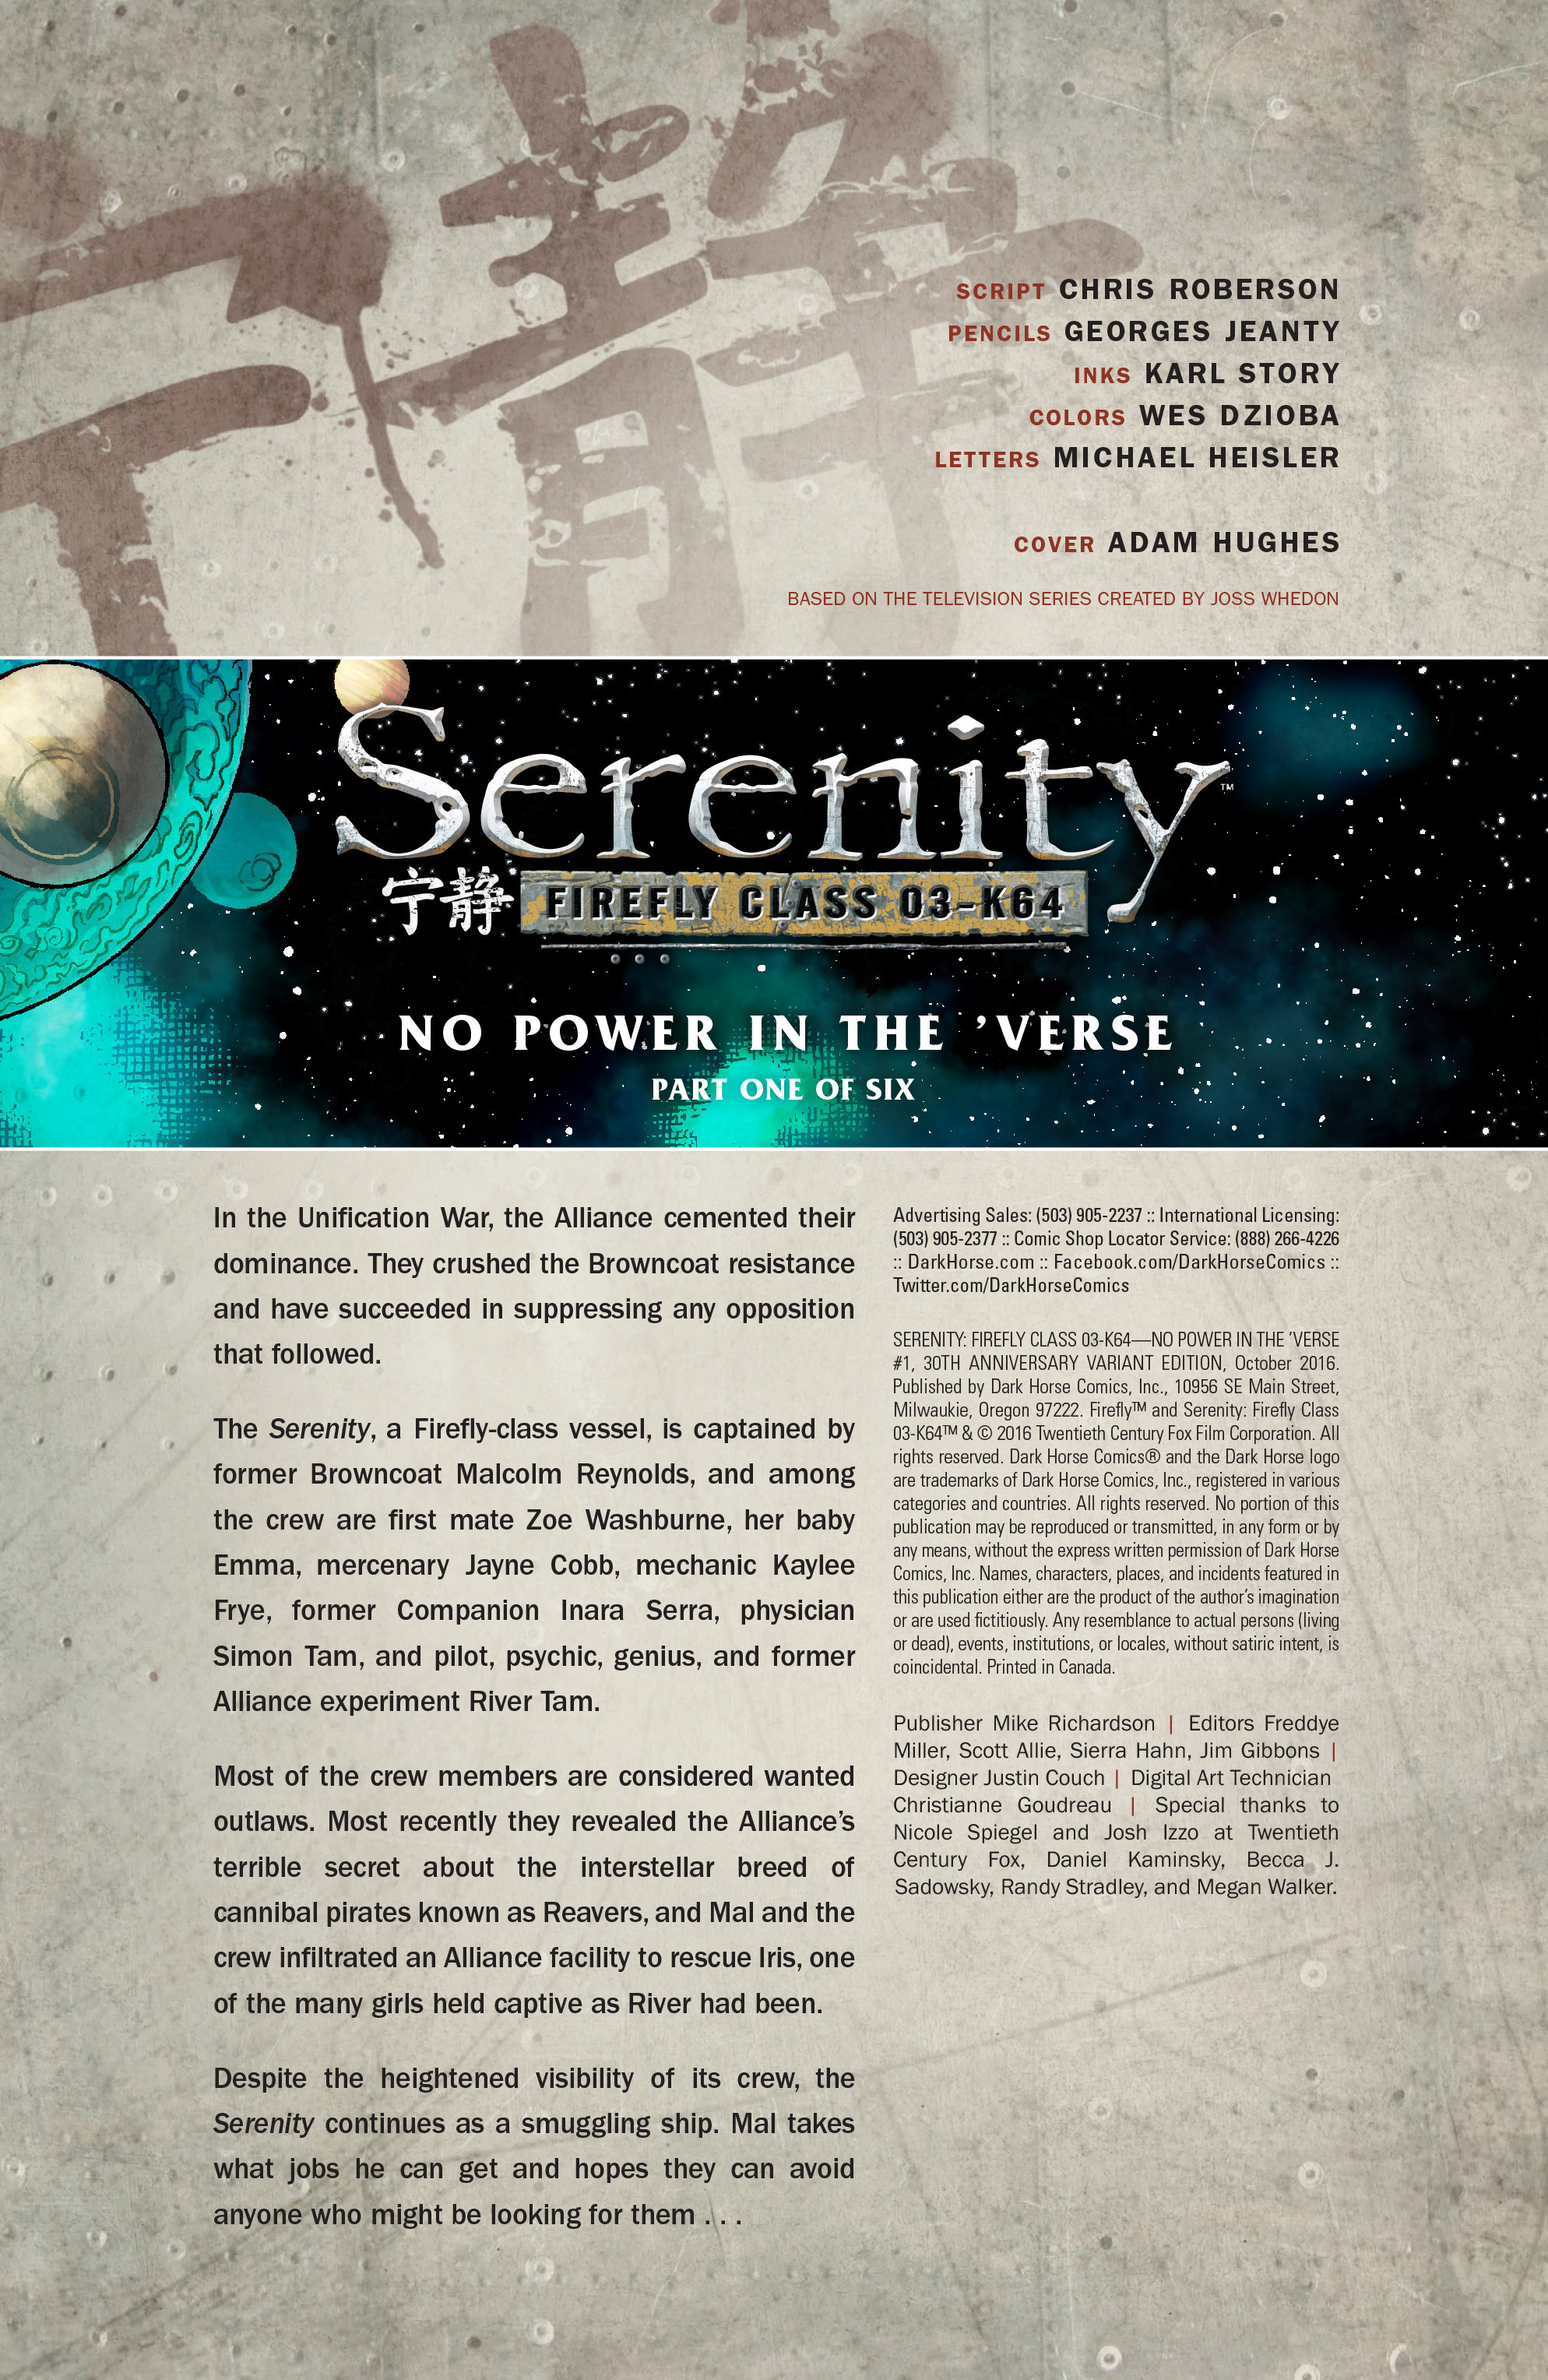 Read online Serenity: Firefly Class 03-K64 – No Power in the 'Verse comic -  Issue #1 - 9